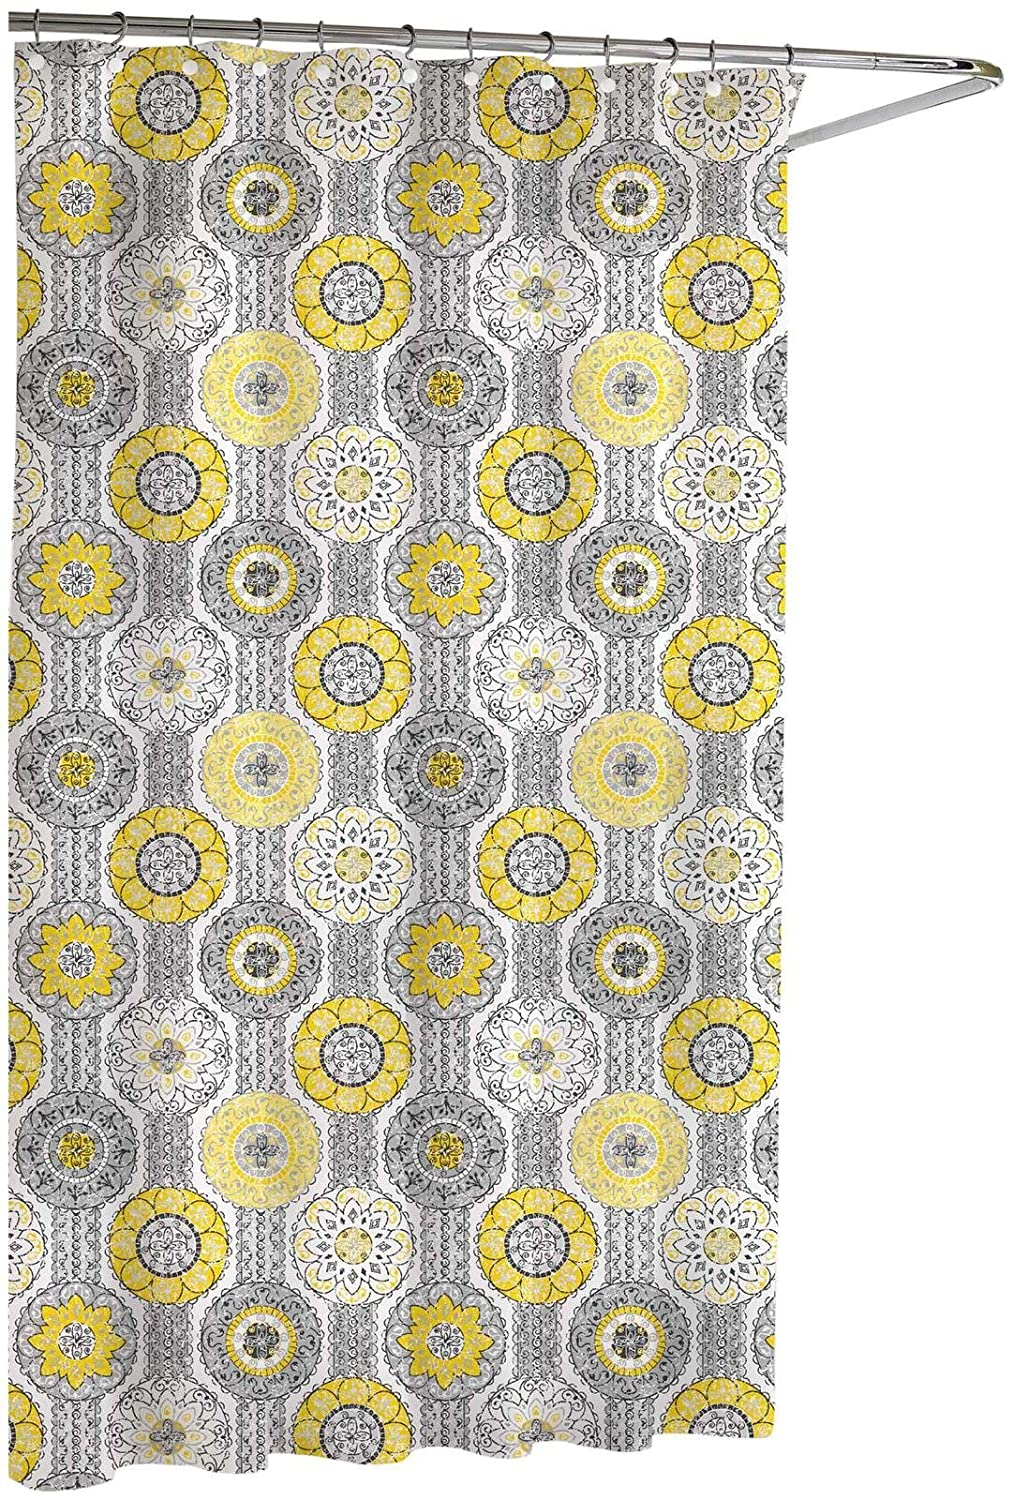 Yellow and gray shower curtain - Amazon Com Kassatex Urban Tiles Shower Curtain Yellow Grey 72 By 72 Inch Home Kitchen